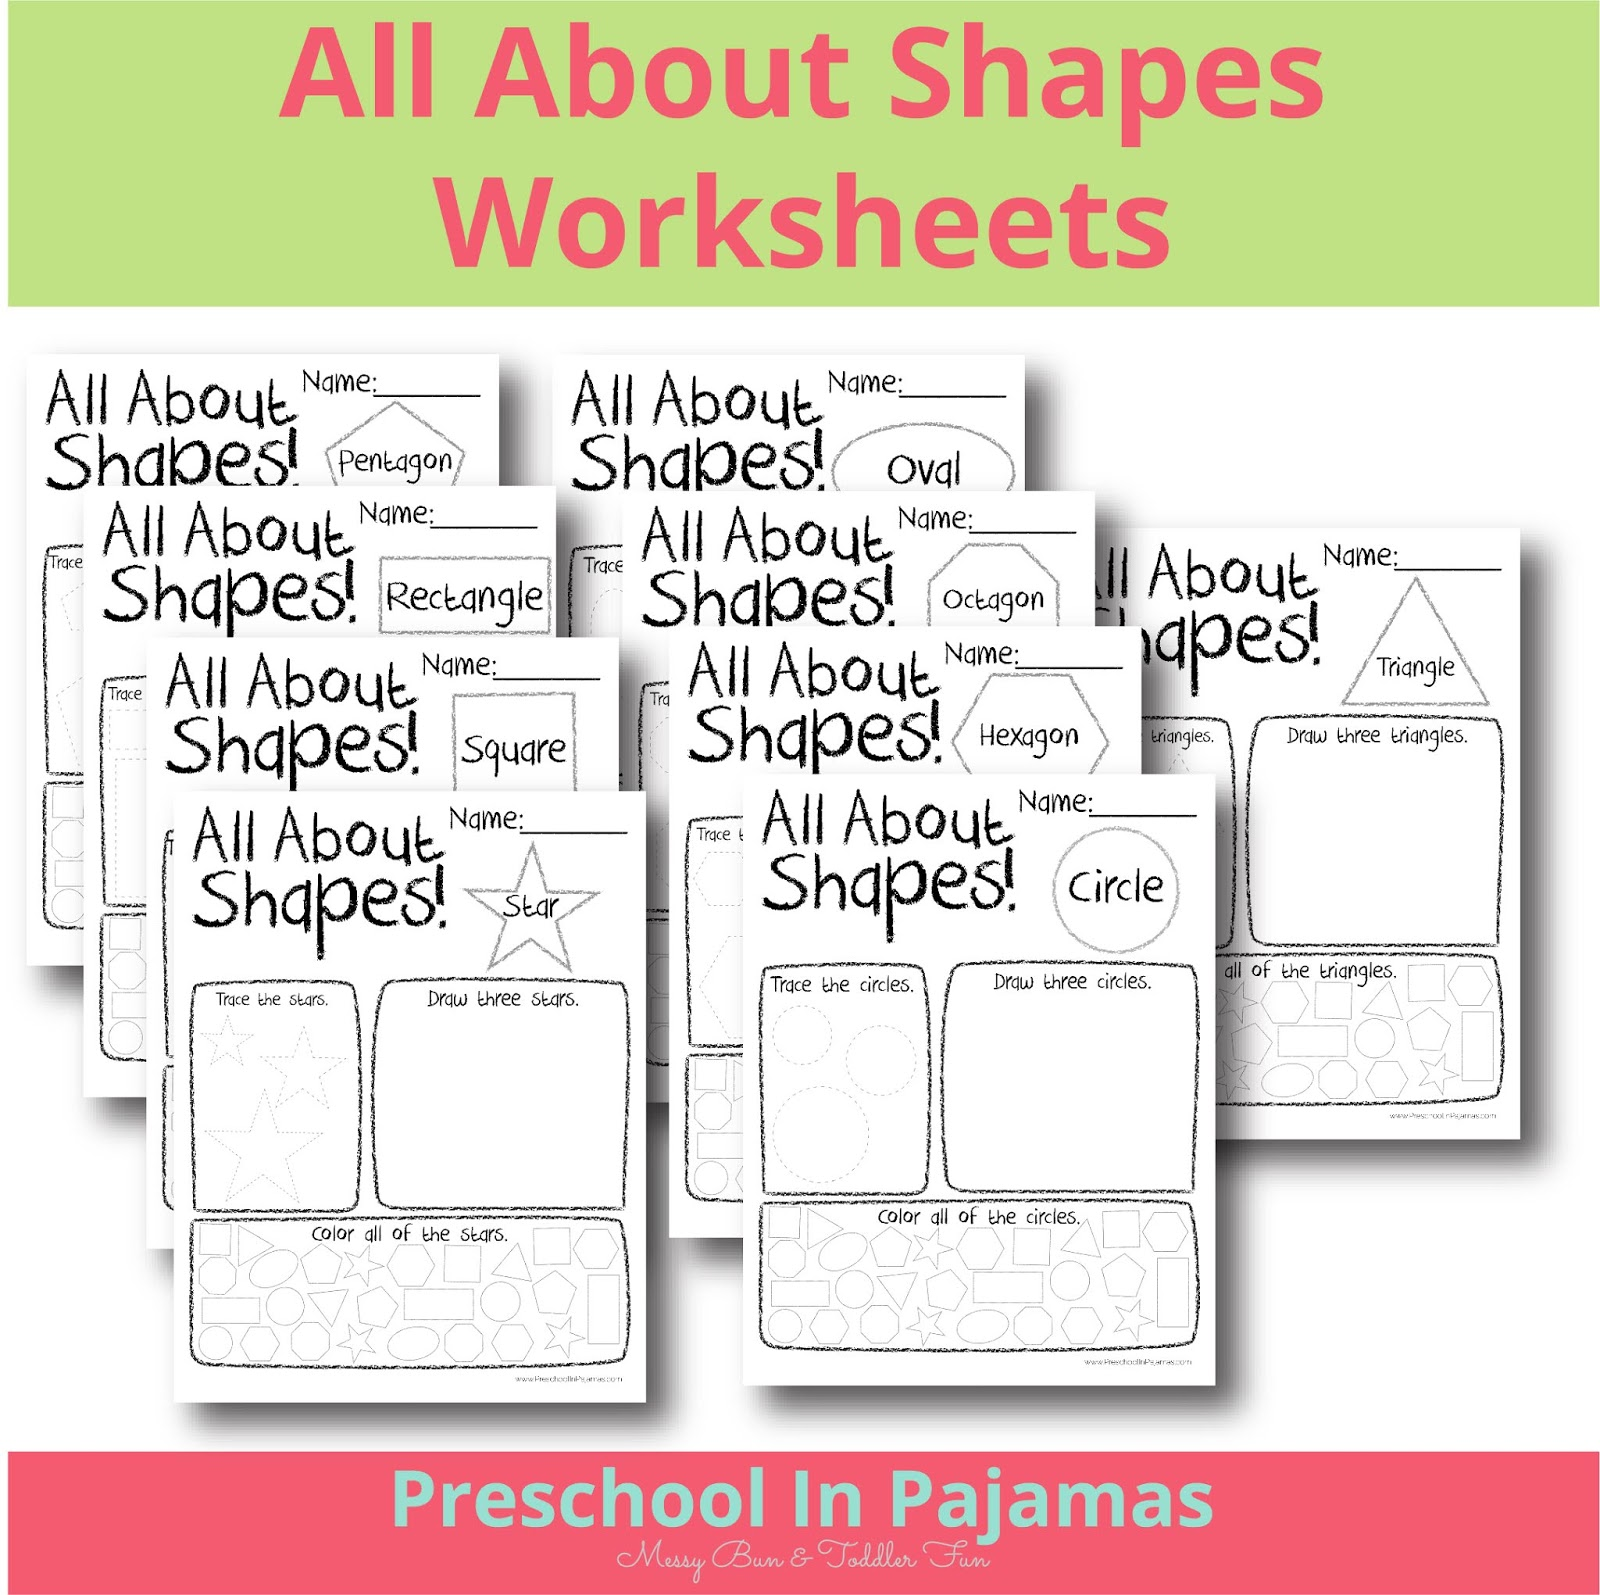 Free All About Shapes Printable Worksheets